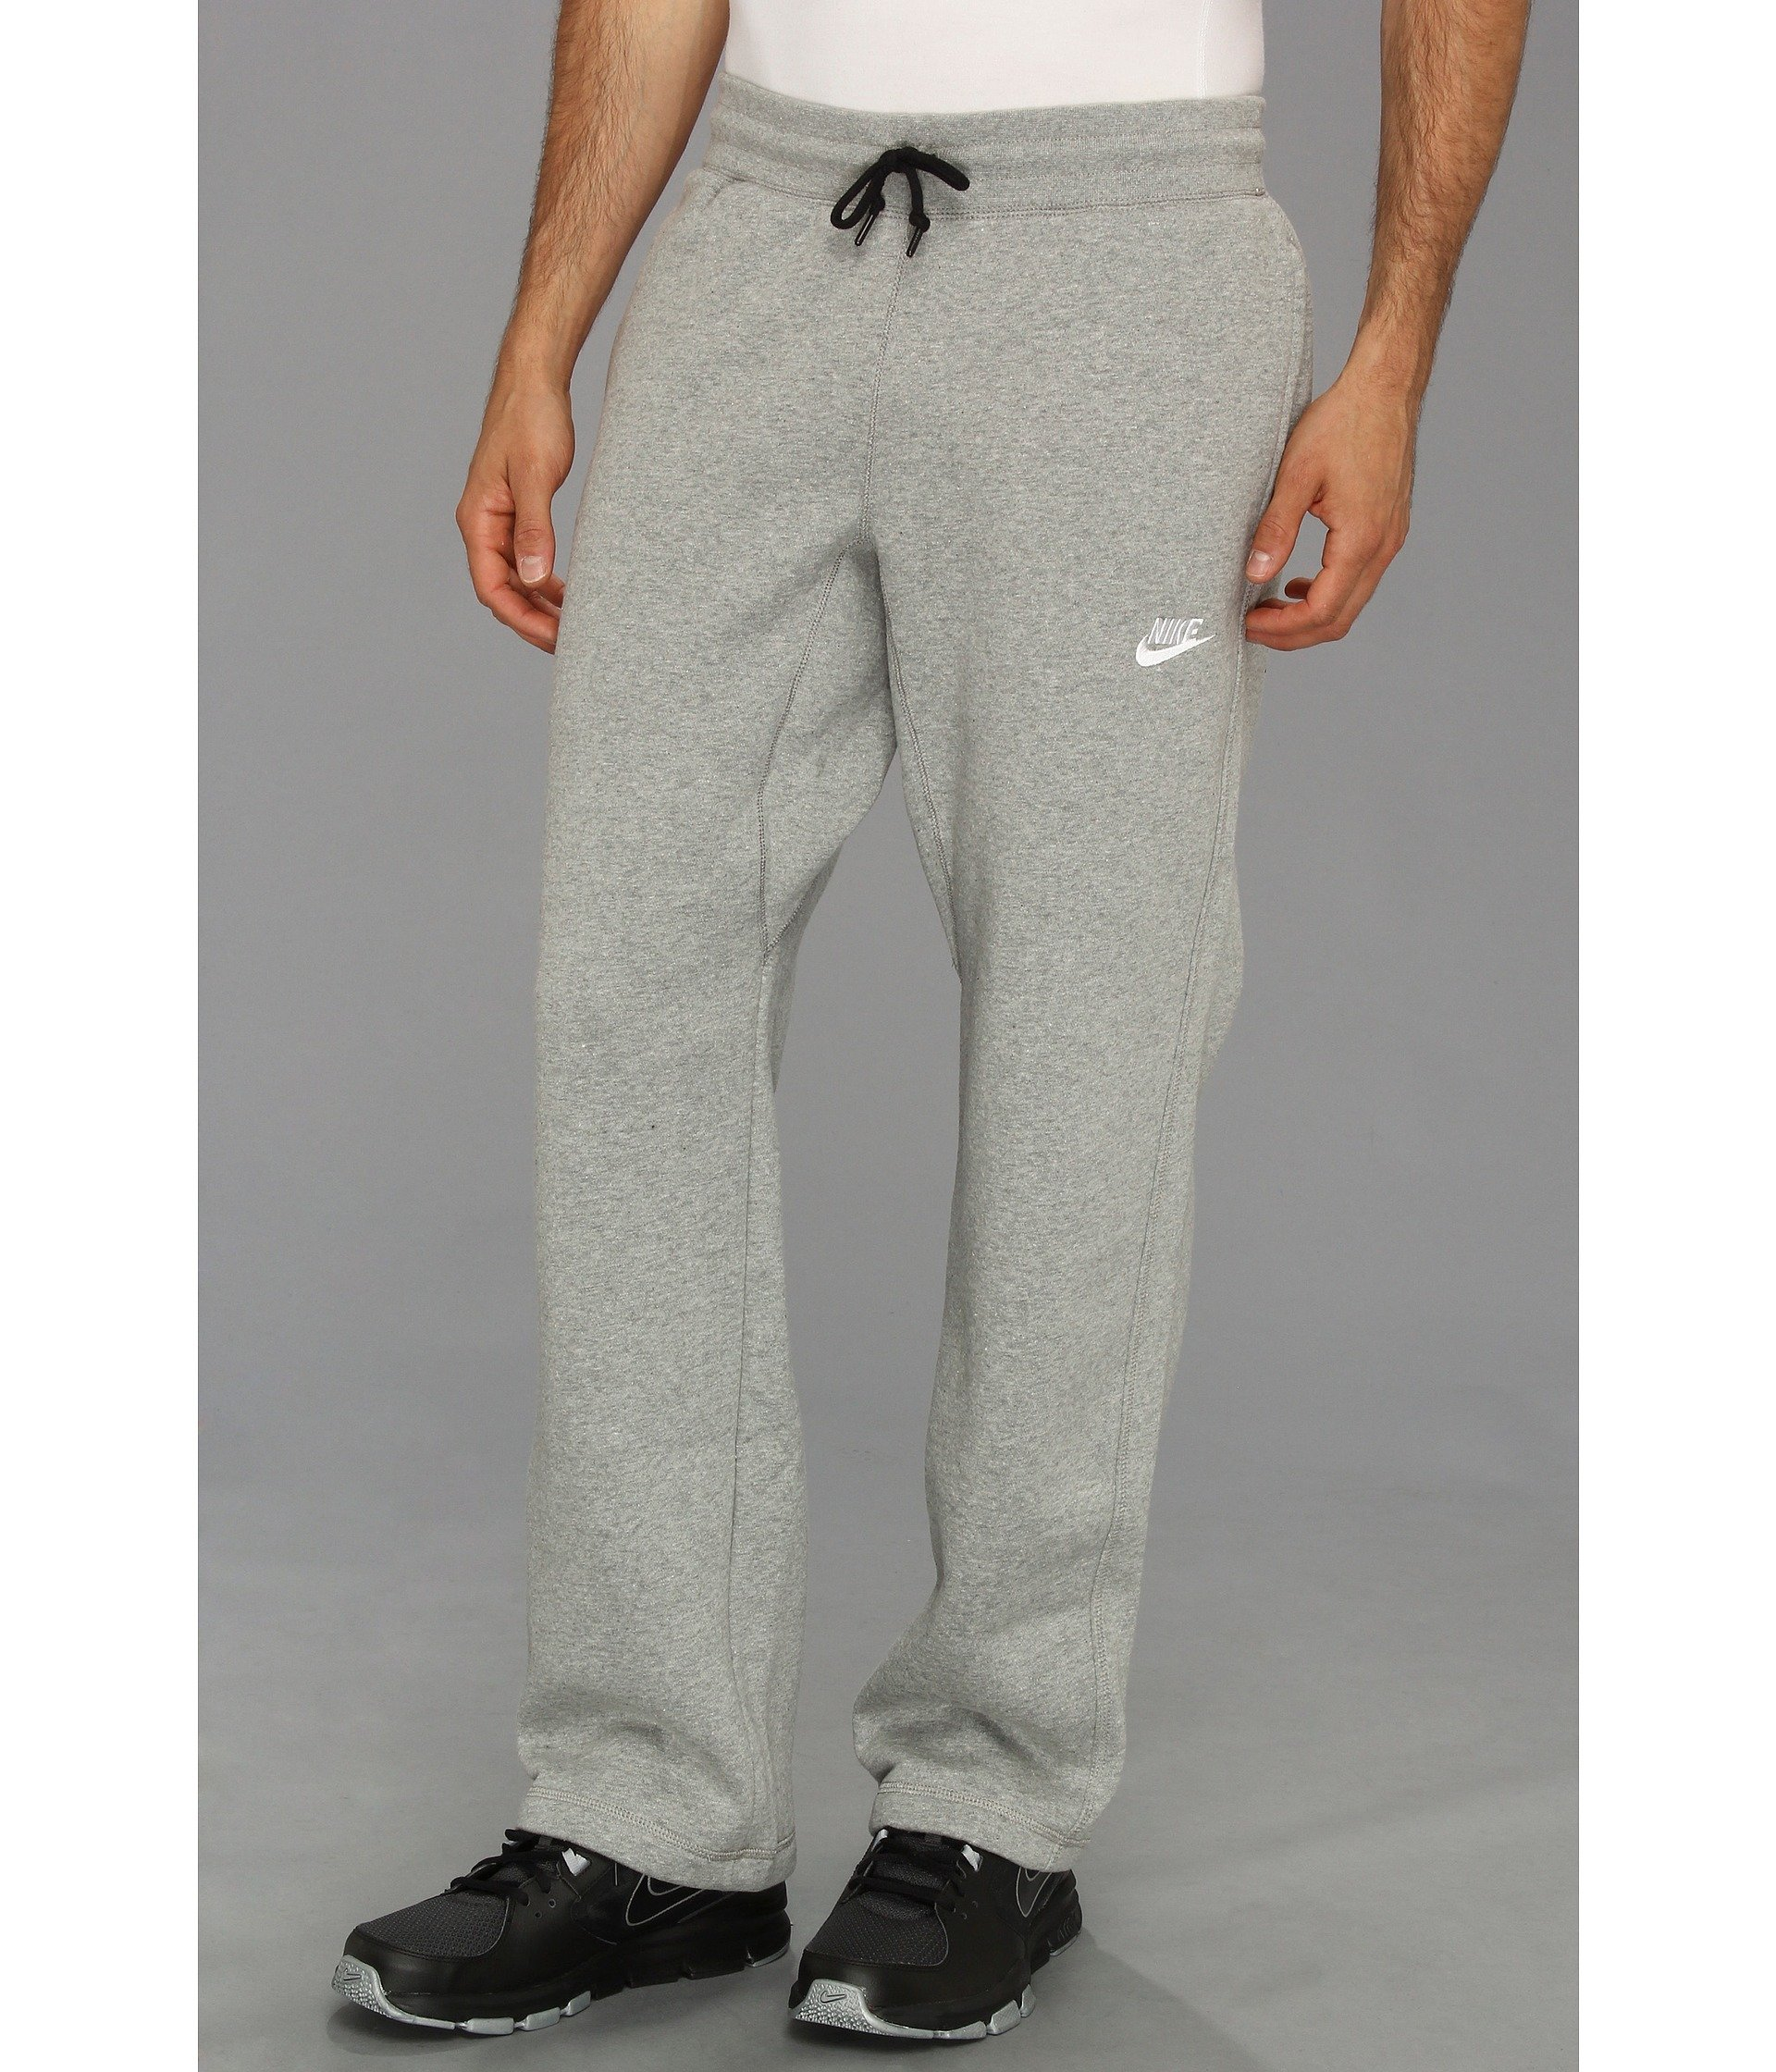 001c623df0de9 Nike Ace Open-hem Fleece Pants in Gray for Men - Lyst